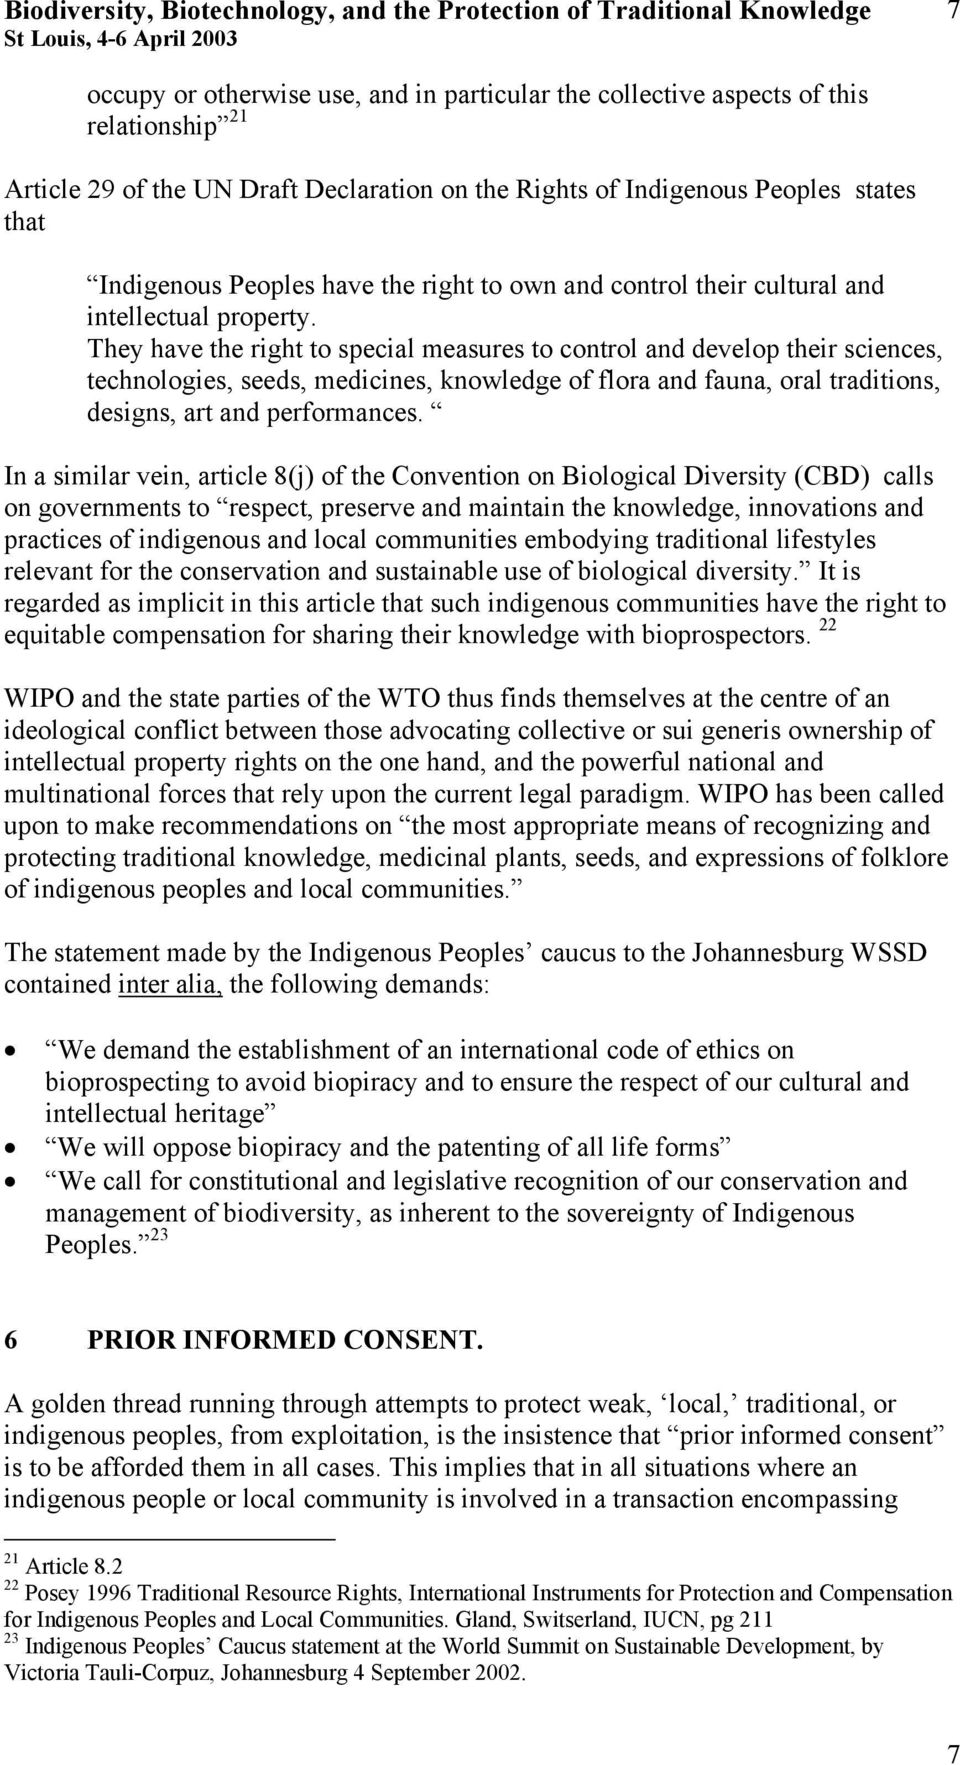 biodiversity biotechnology and indigenous knowledge The mataatua declaration on cultural and intellectual property rights of indigenous peoples the value of indigenous knowledge, biodiversity and biotechnology, customary environmental management, arts insist that the first beneficiaries of indigenous knowledge.